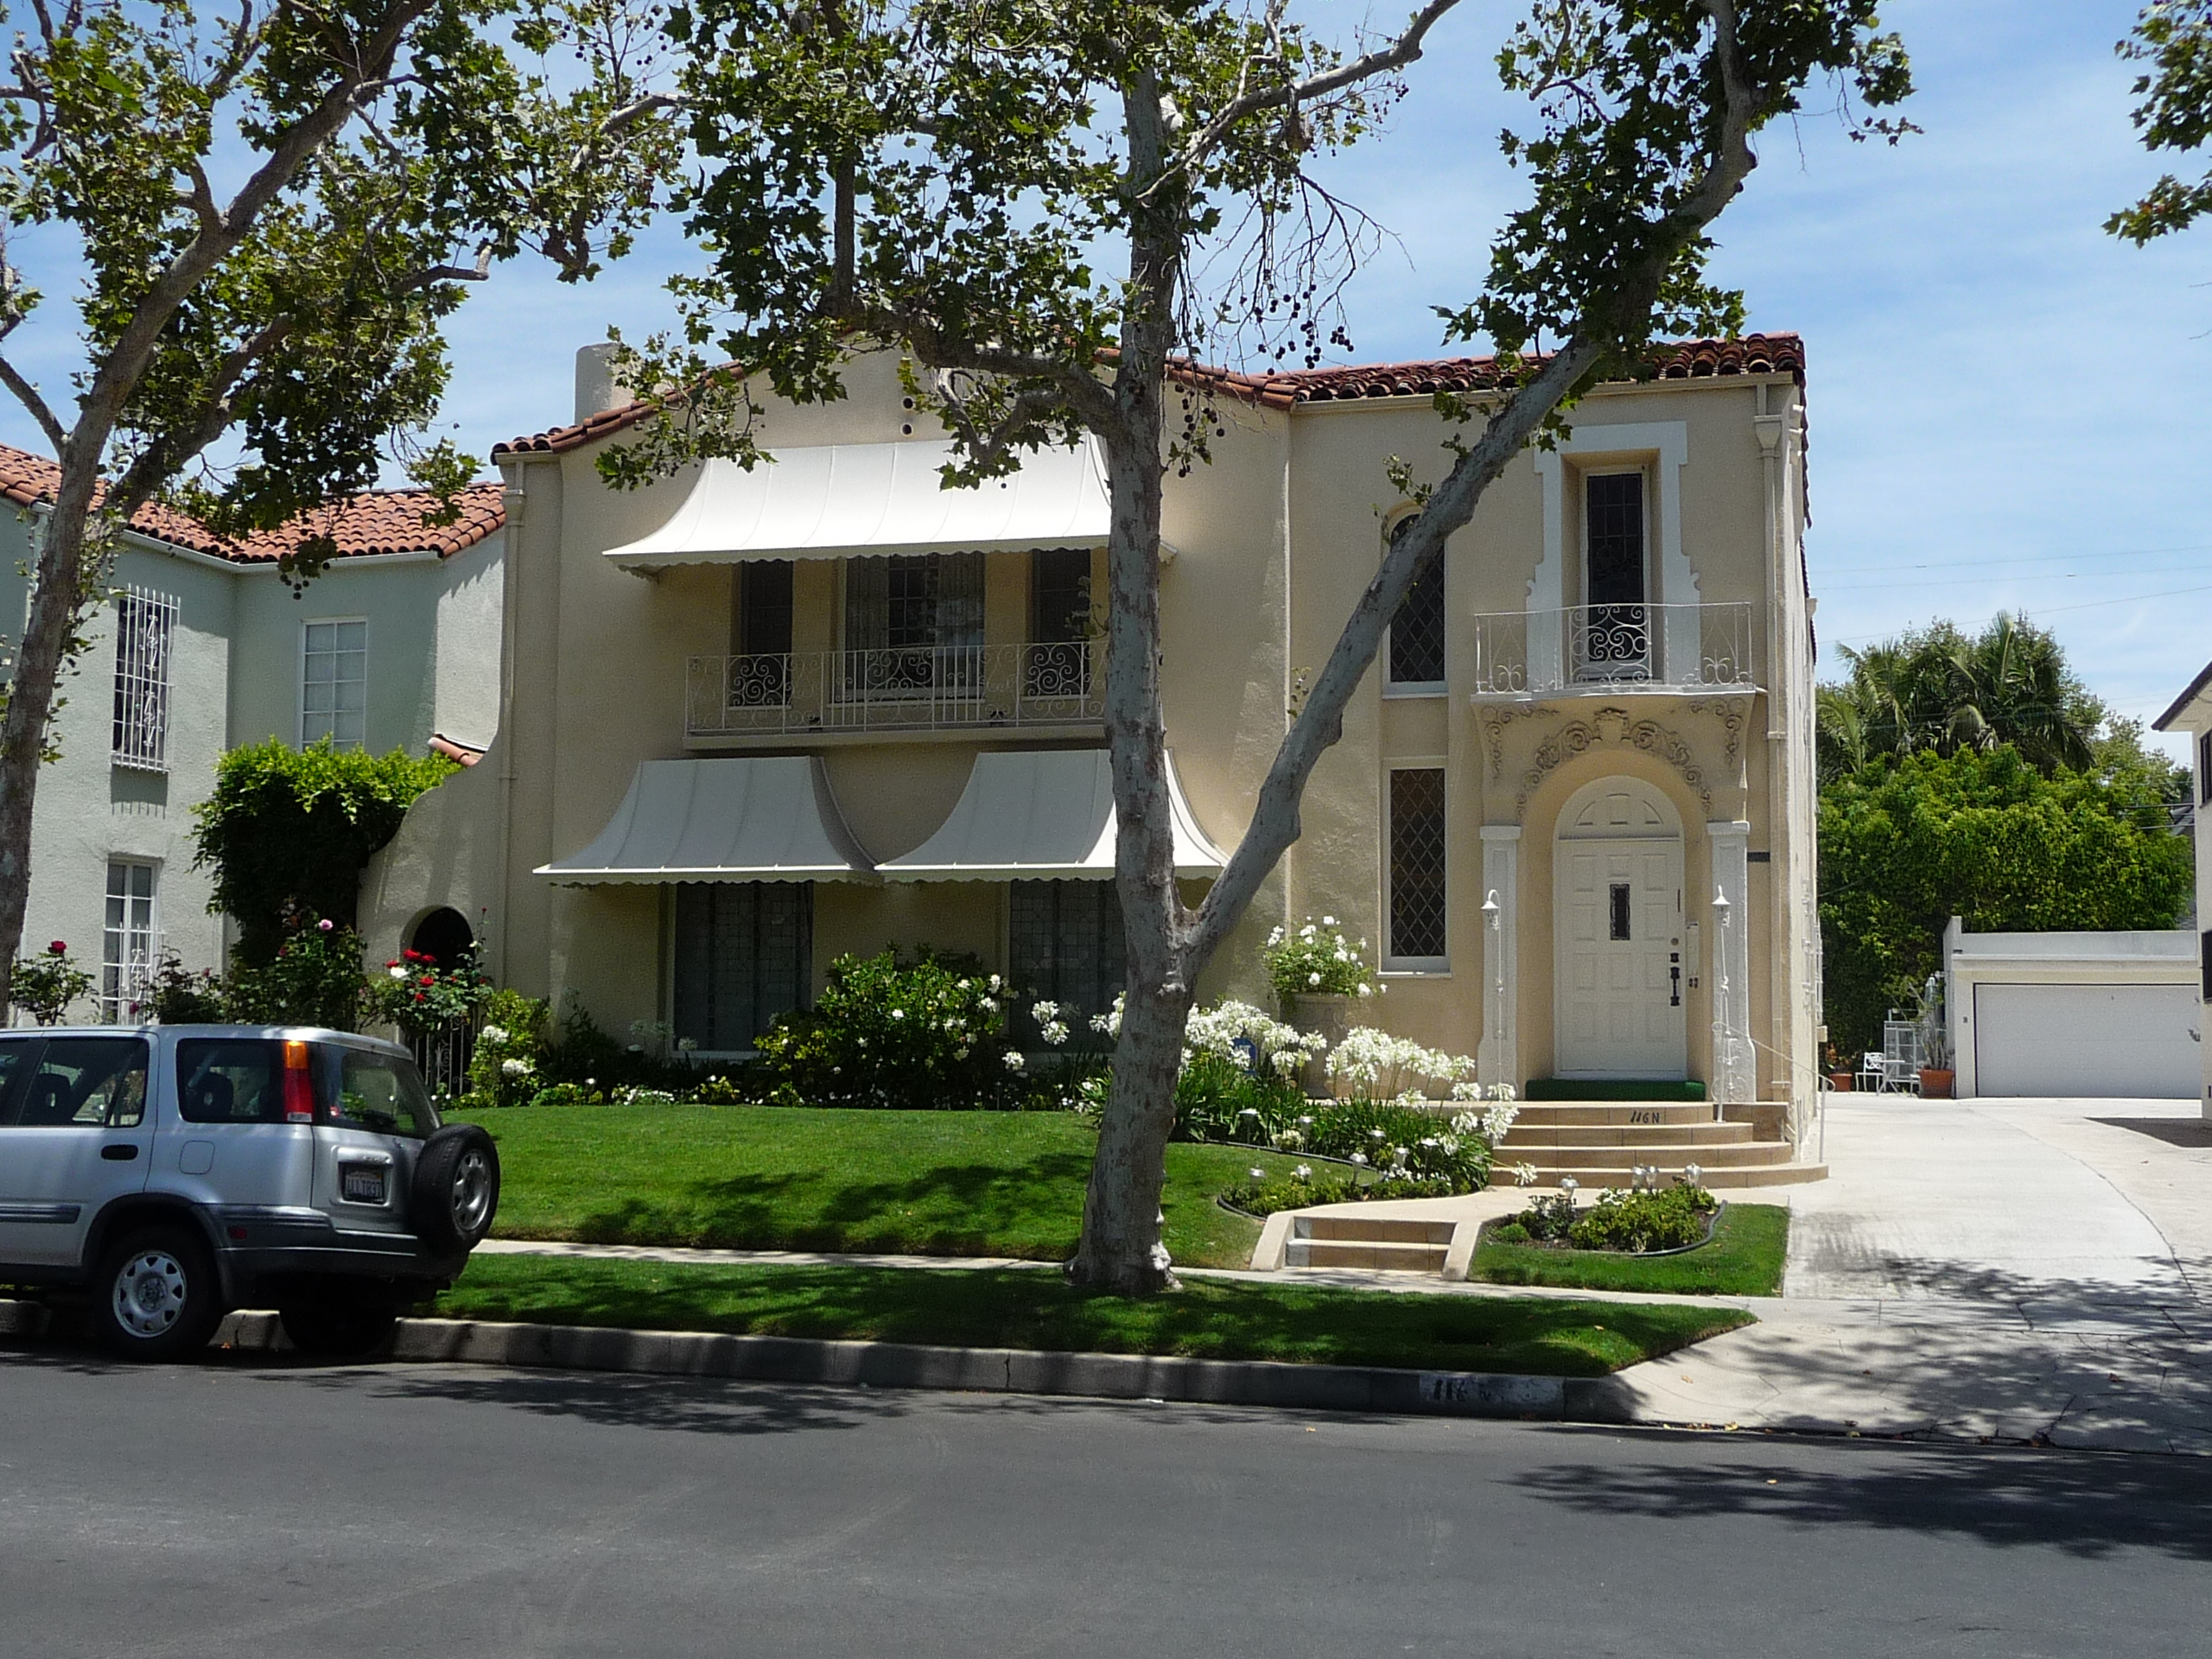 116 N MANSFIELD AVE - PHOTO